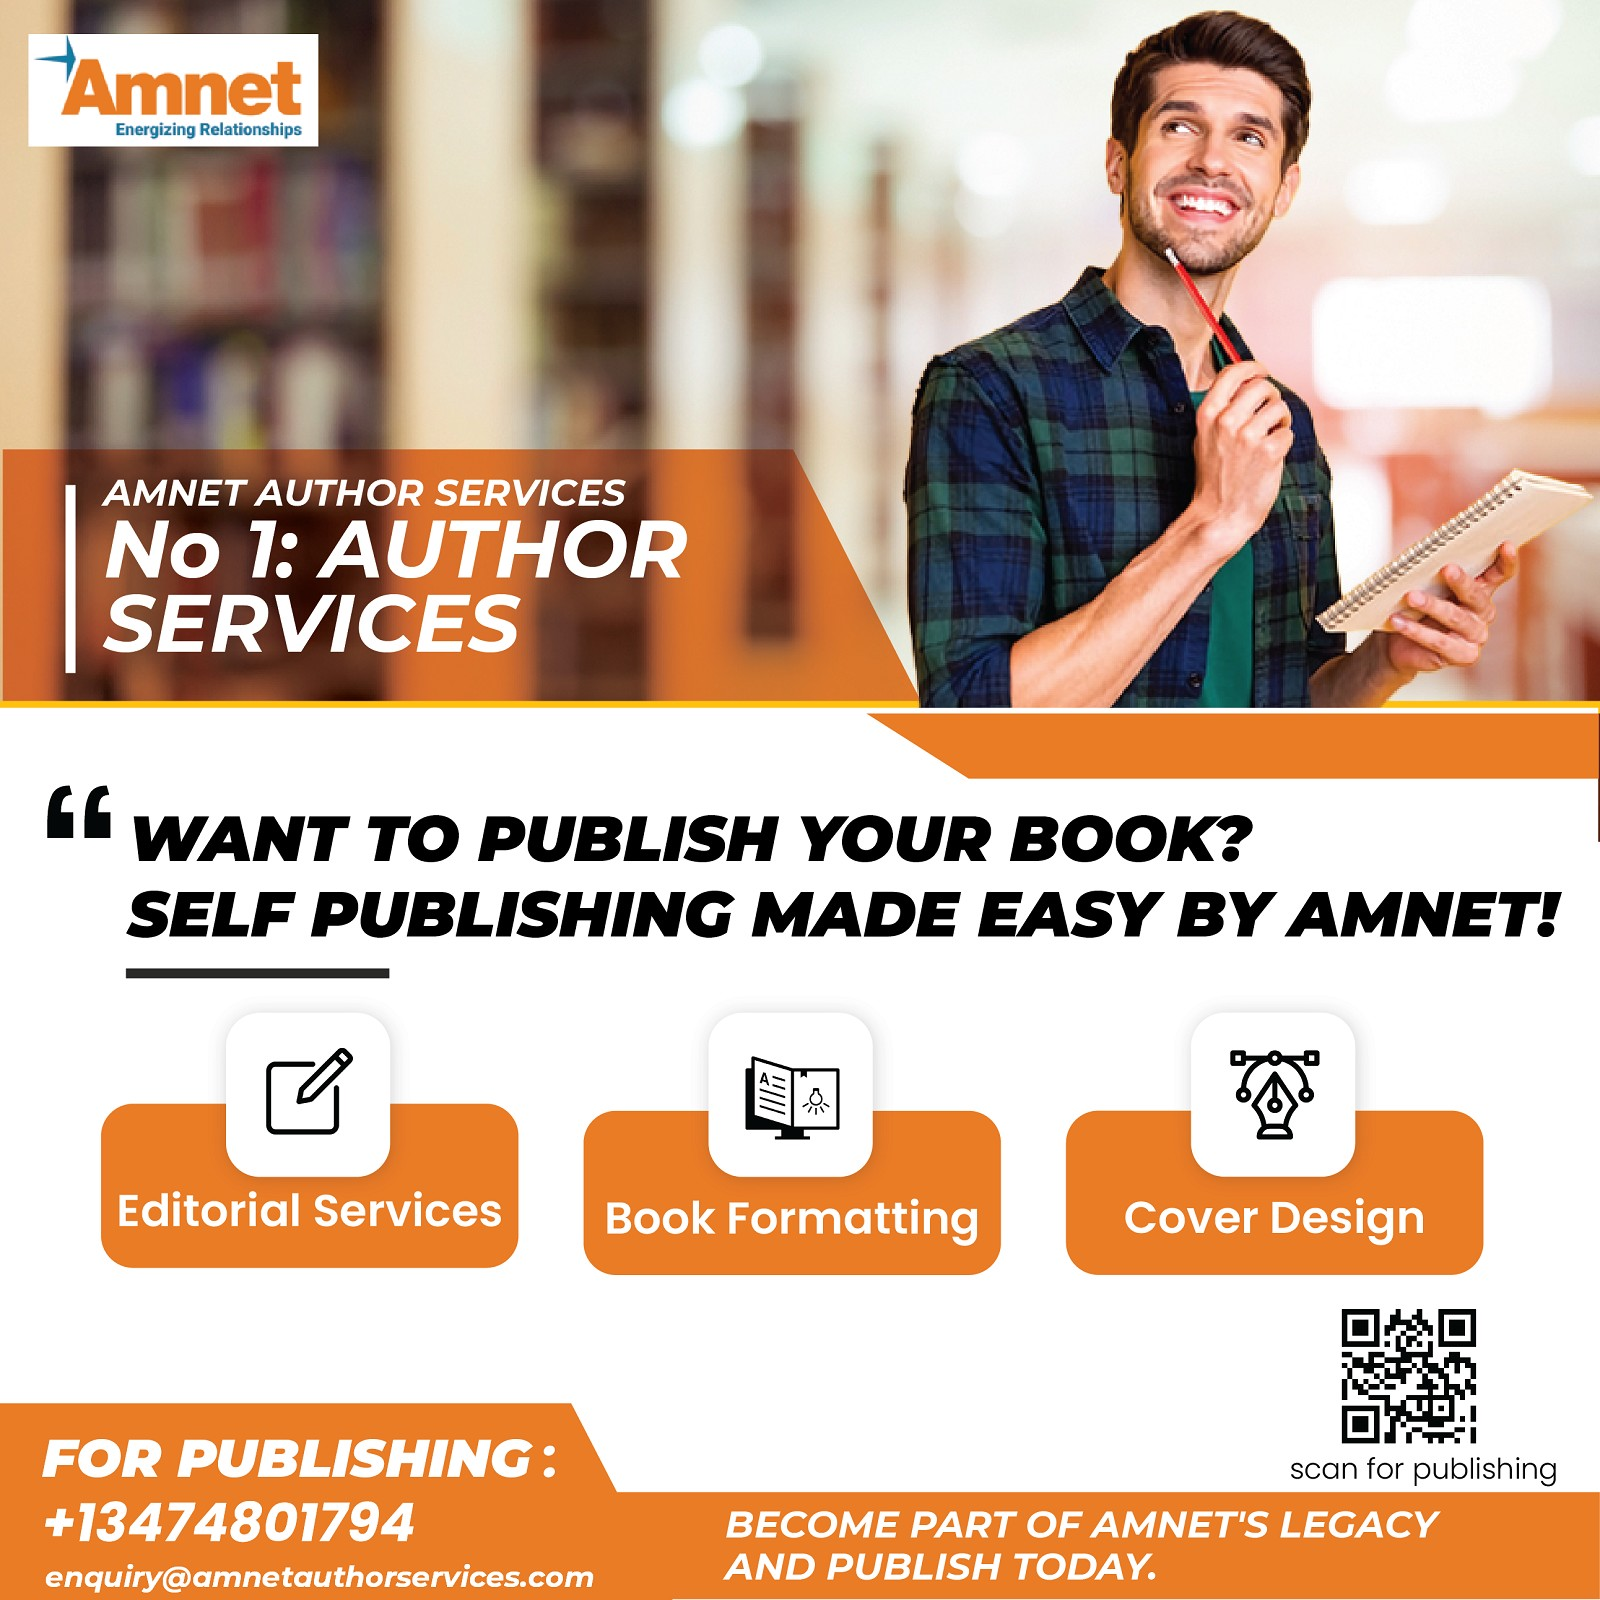 Want to publish your book? Self-publishing made easy by AMNET